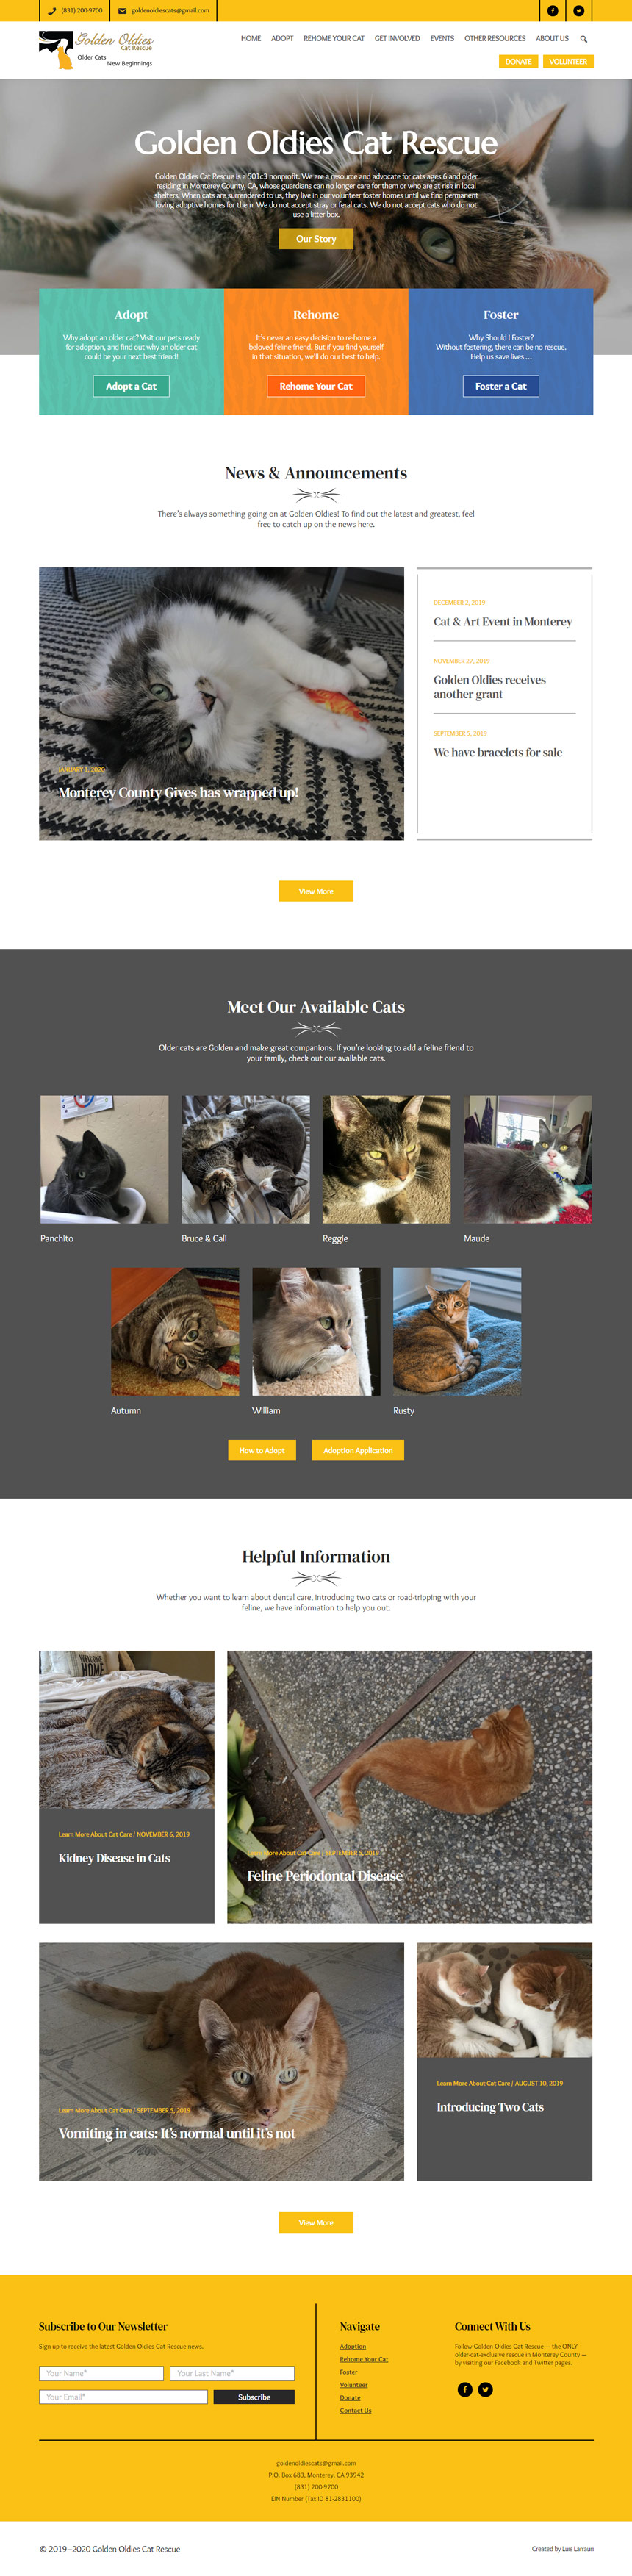 Golden Oldies Cat Rescue Home Page